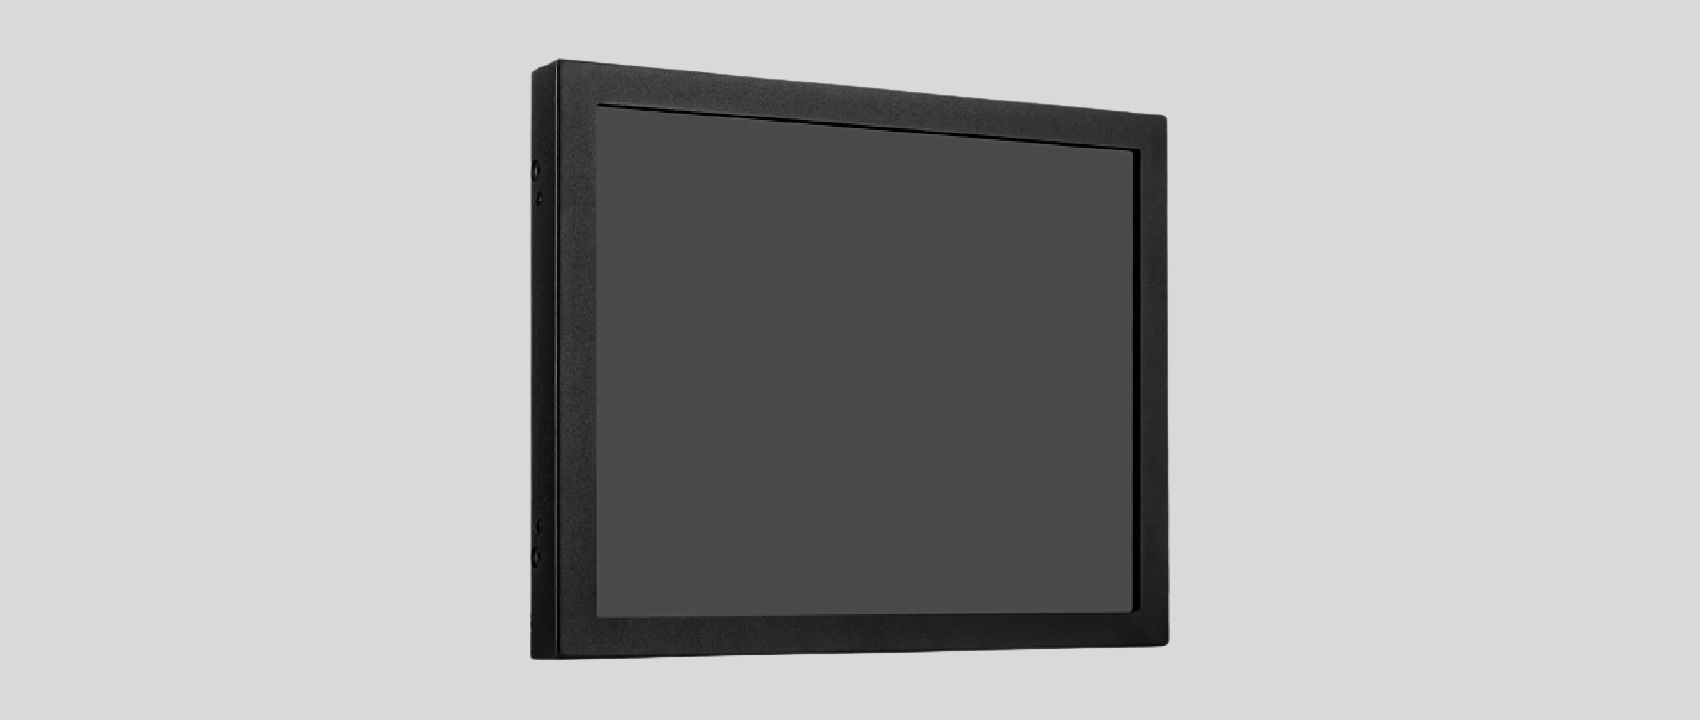 PANEL MOUNT OPEN FRAME TOUCHSCREEN MONITOR